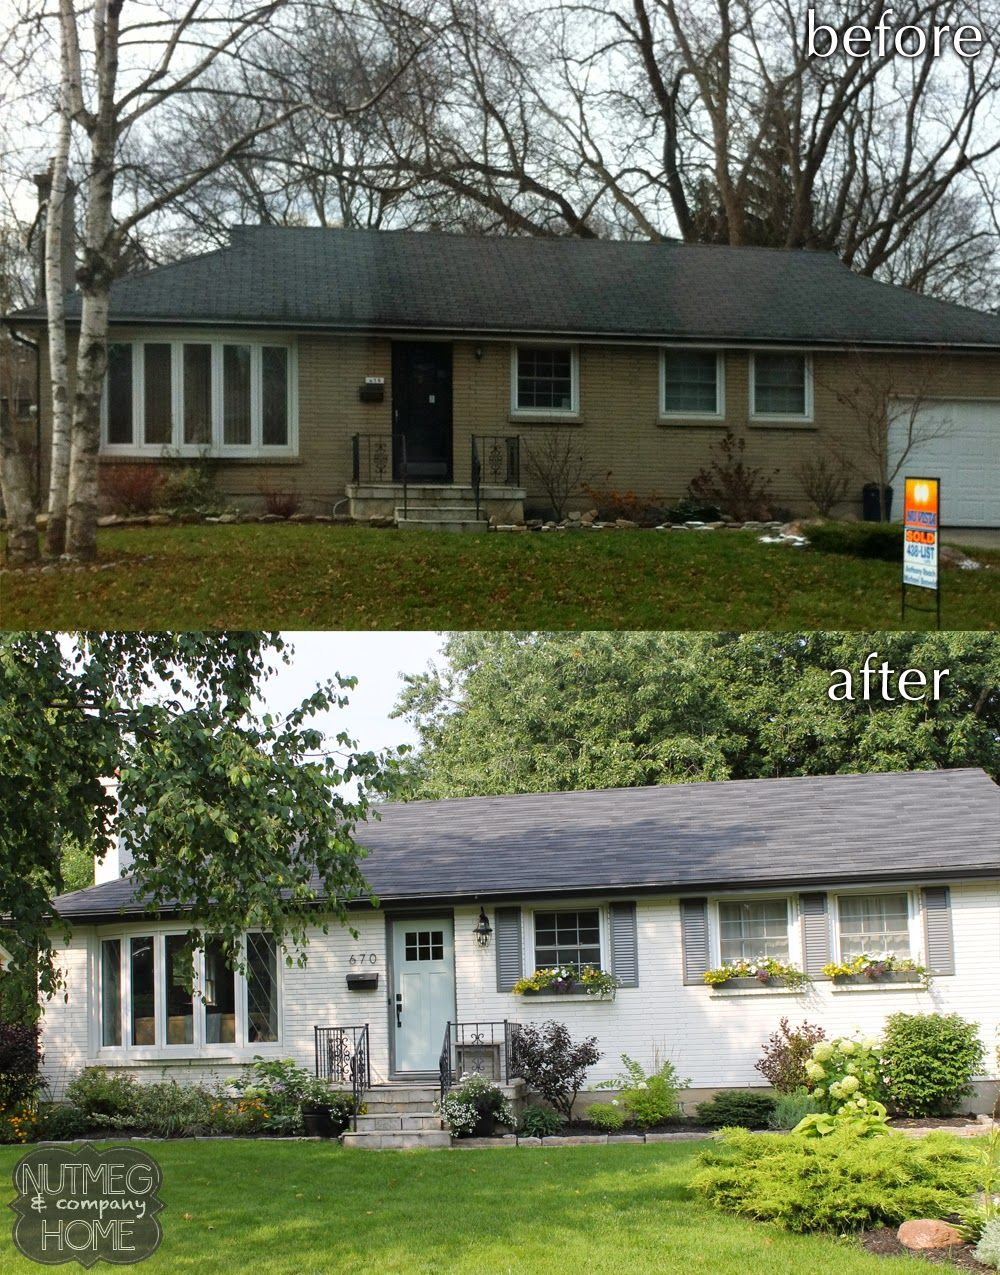 Nutmeg Company Home Before After Curb Appeal Part 2 Home Exterior Makeover Exterior House Colors House Paint Exterior